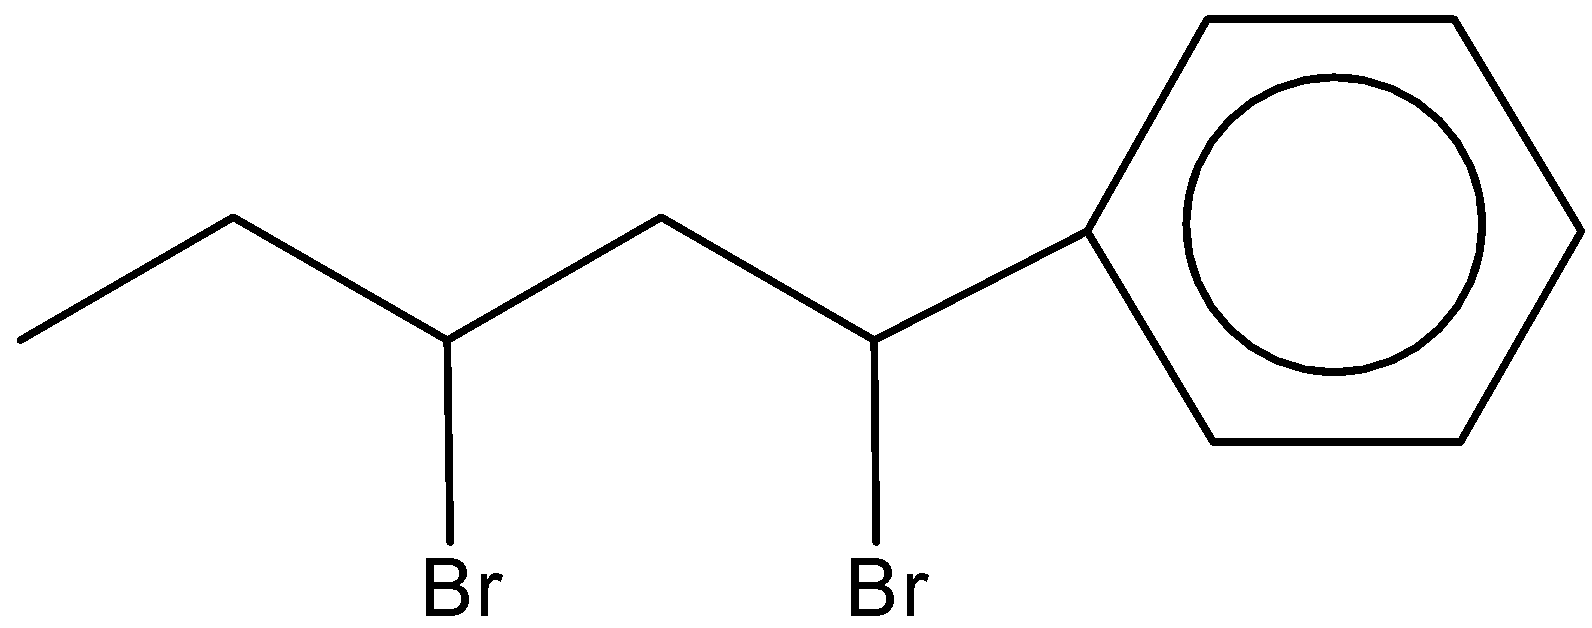 The structure of 2 3dibromo1phenylpentane is A B C class